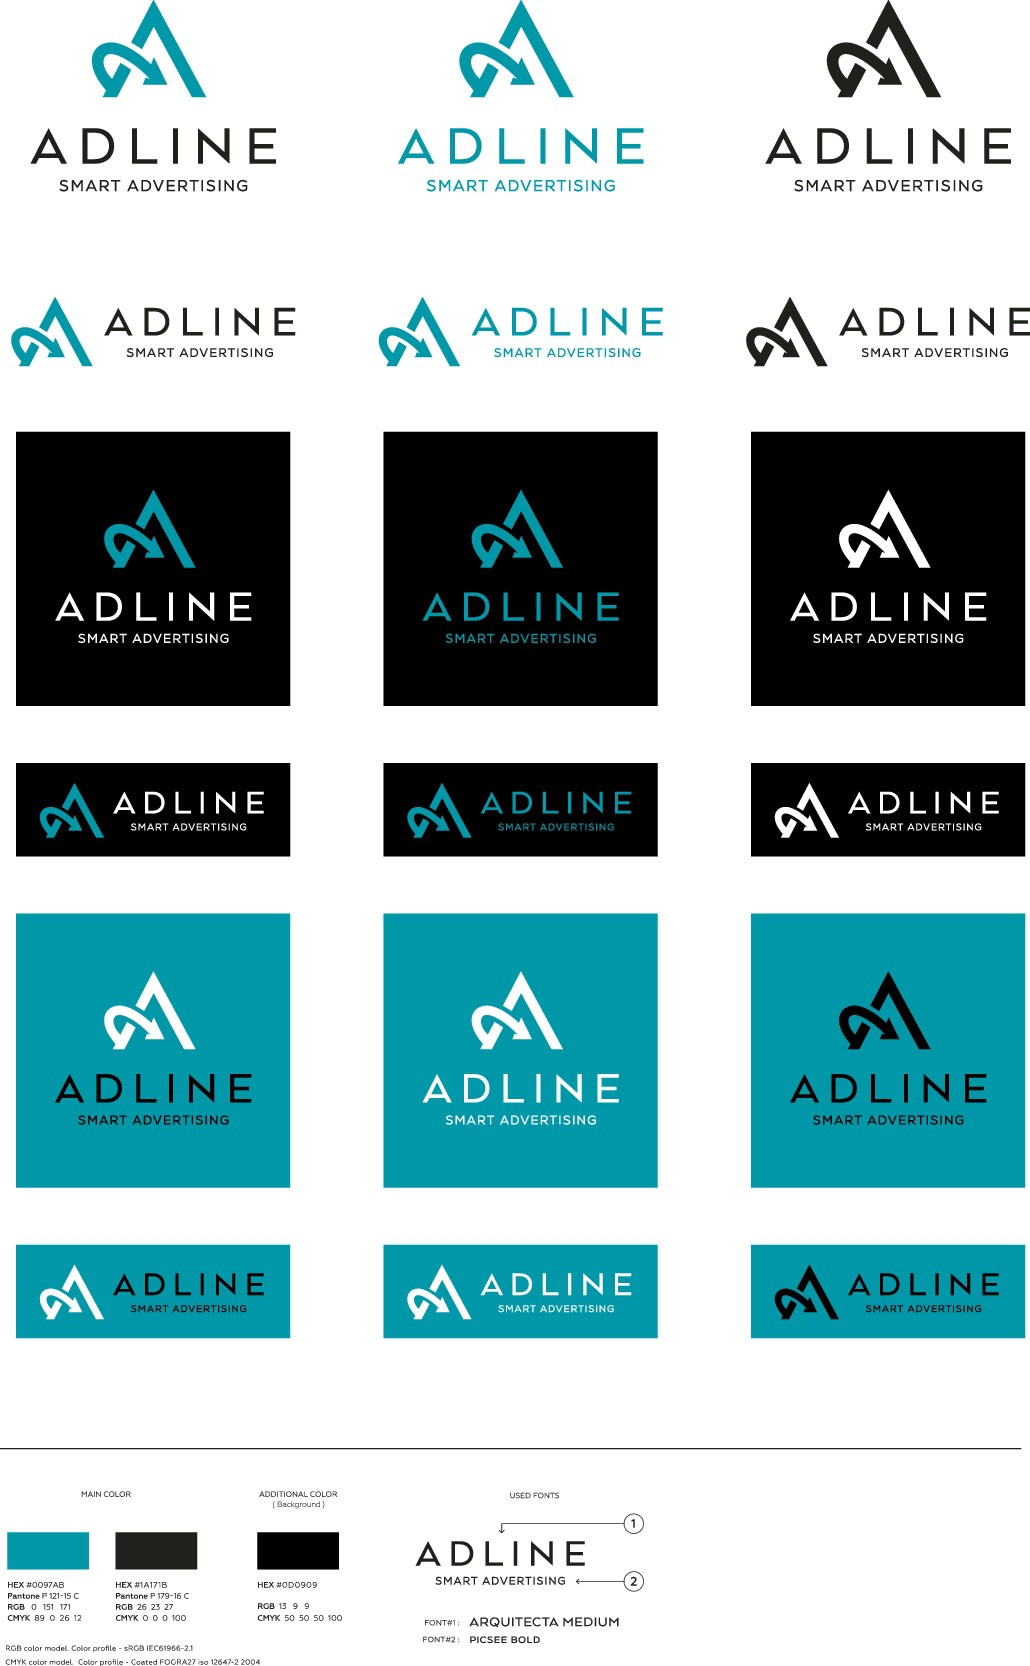 New logo for adline